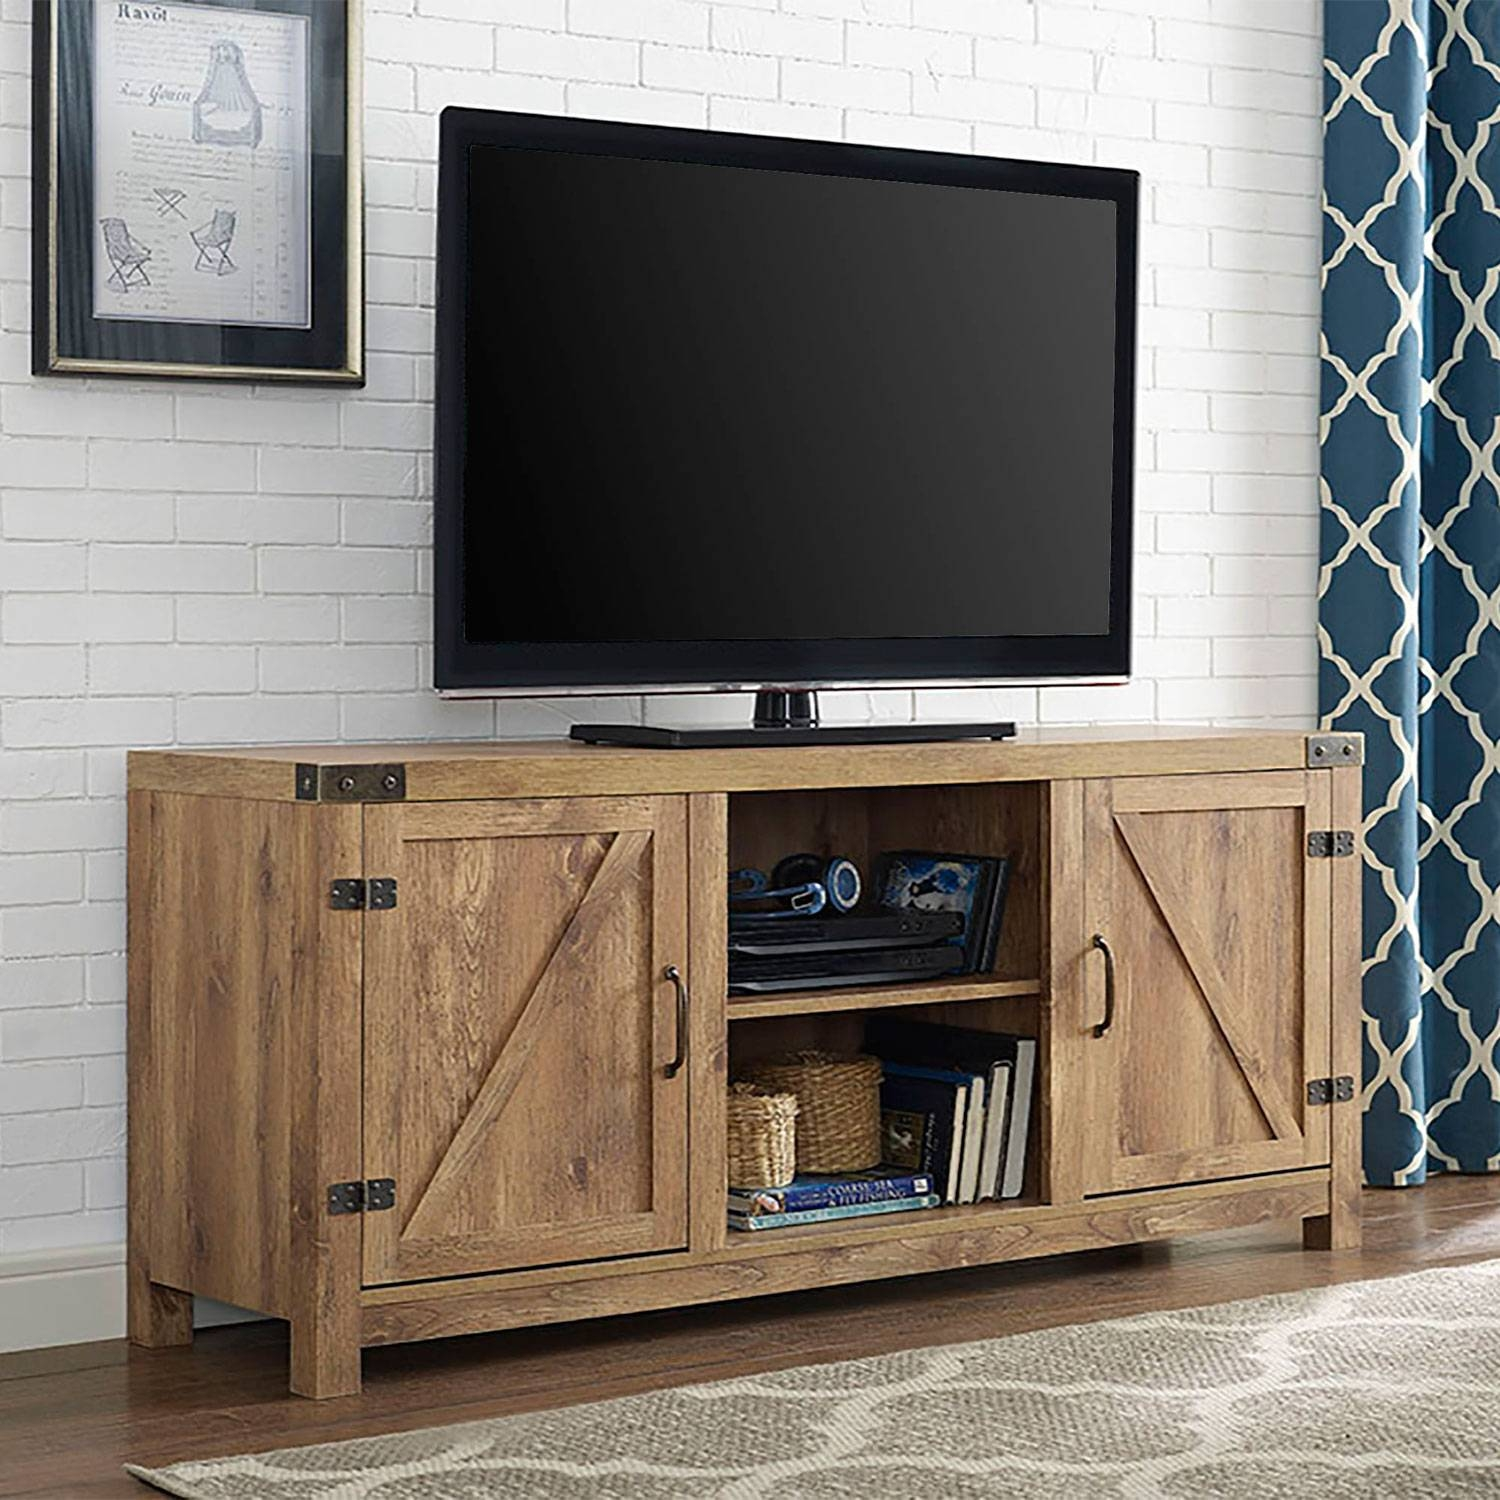 Tv Stands & Cabinets On Sale | Bellacor For Funky Tv Stands (View 13 of 15)